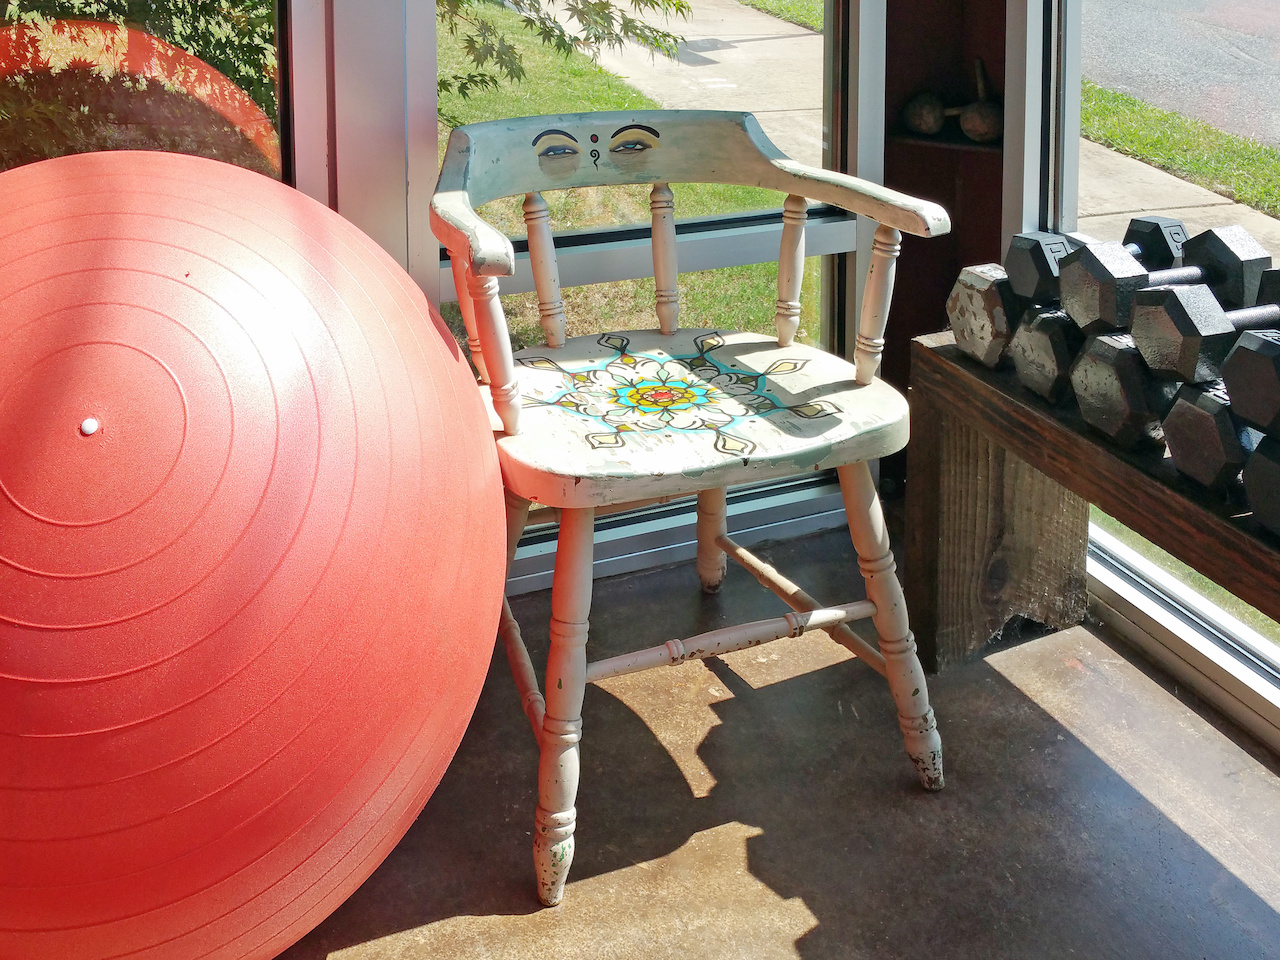 A corner of the sunroom features a colorfully decorated yoga lover's chair.